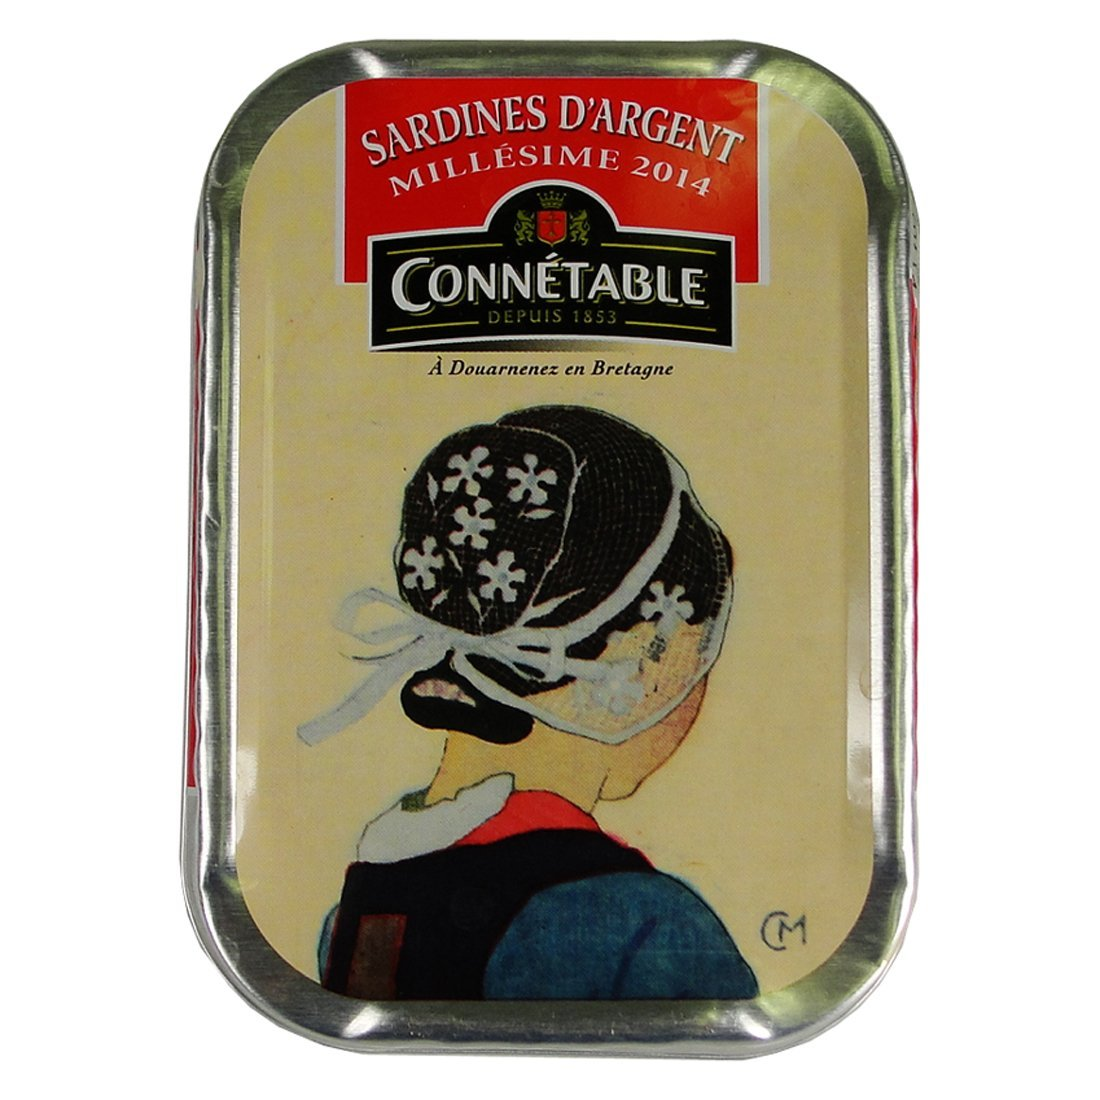 Connetable Sardines d'Argent Millesime 2014 in Olive Oil 4 oz by Connetable